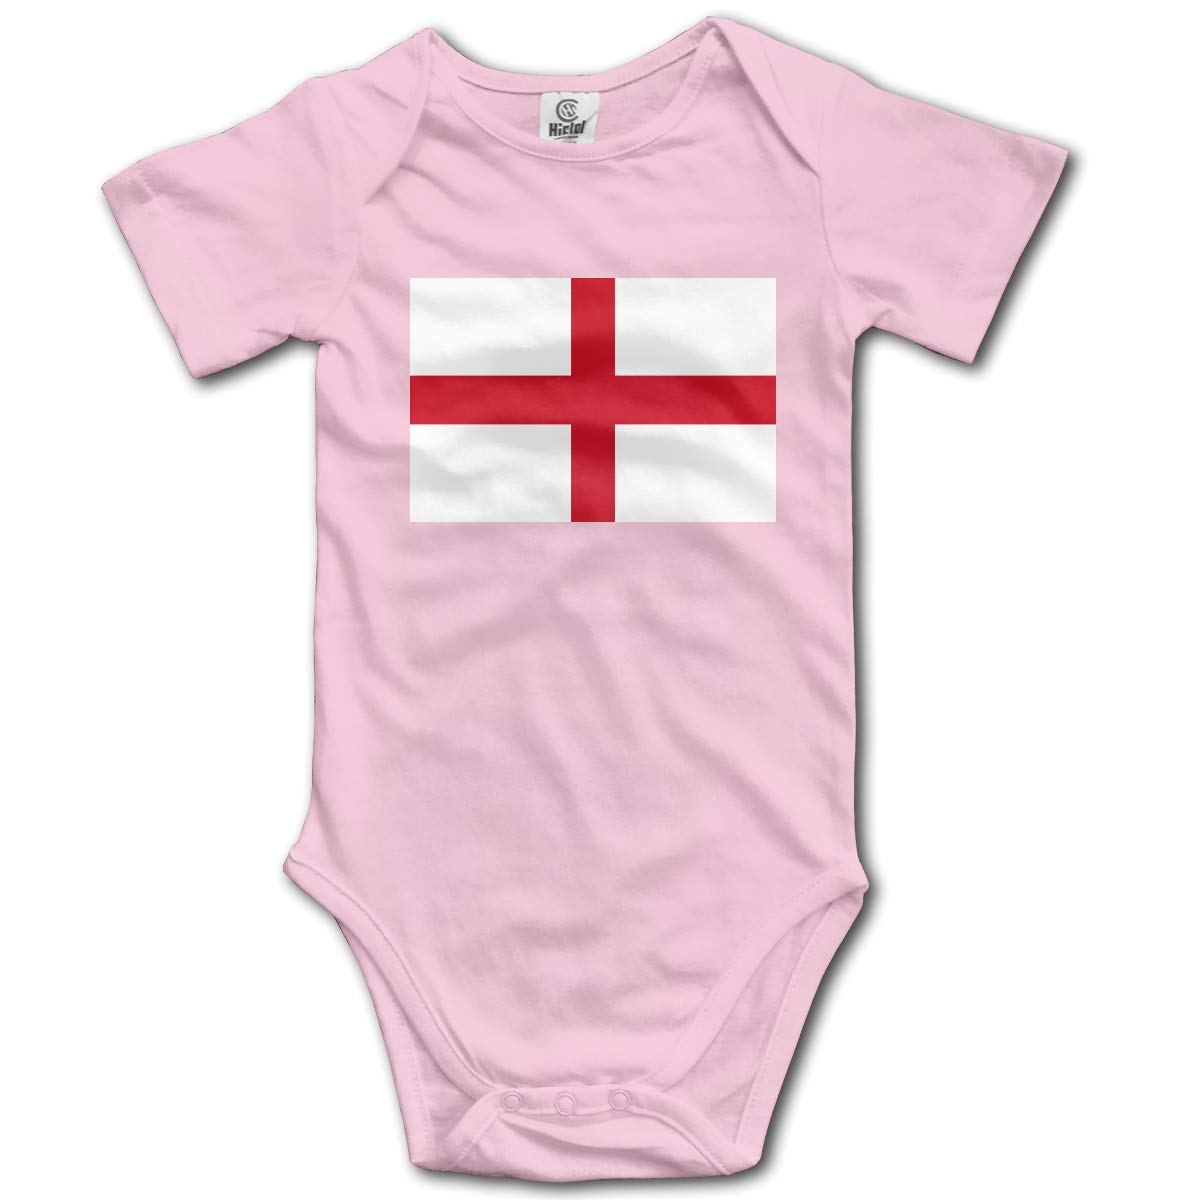 CUTEDWARF Baby Short-Sleeve Onesies Flag of England Bodysuit Baby Outfits